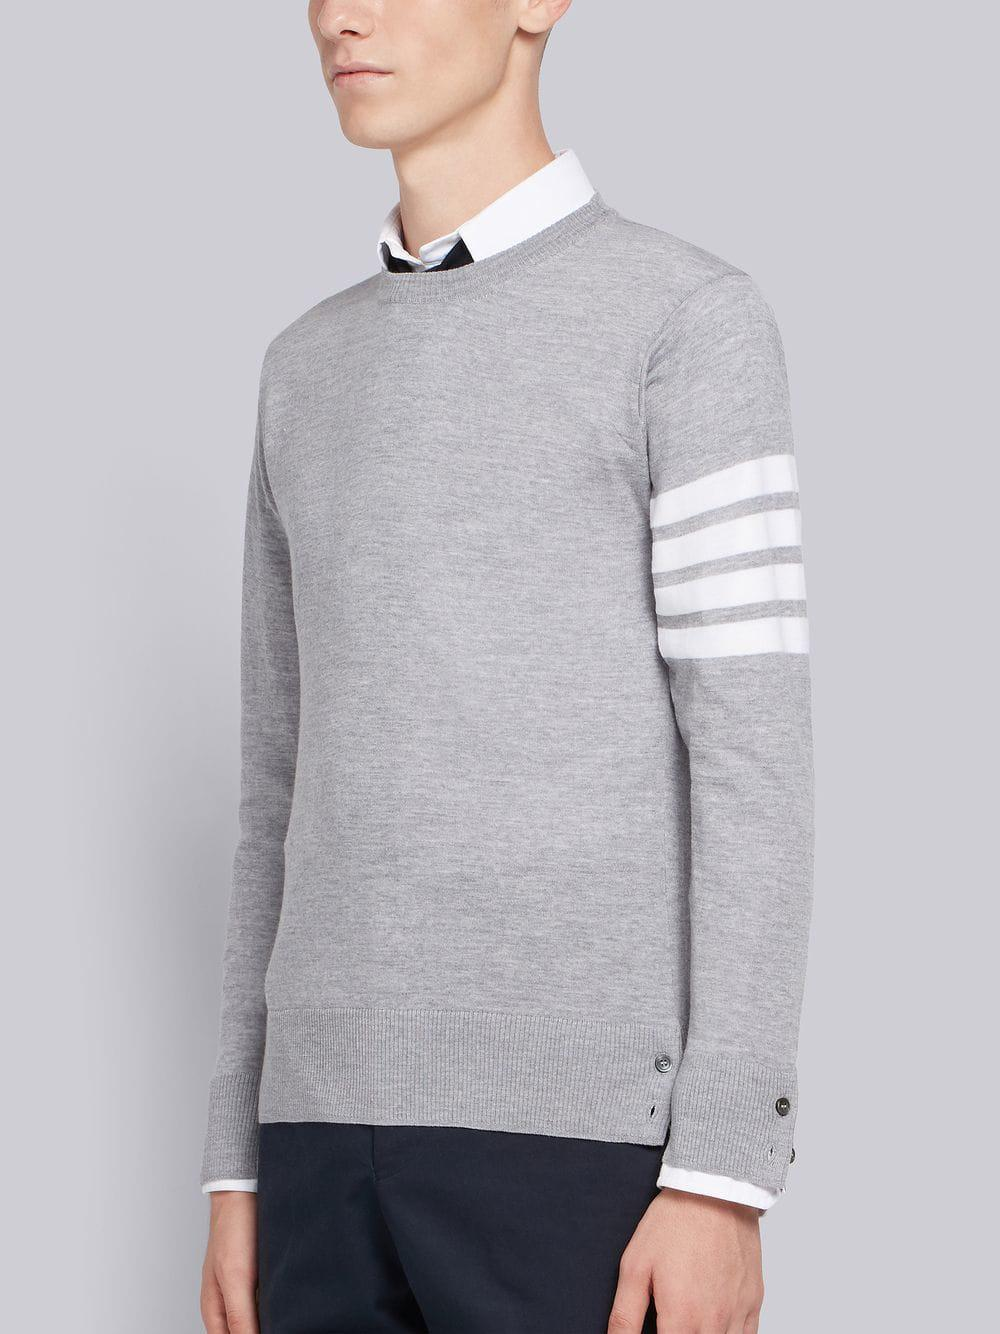 11b532744d Thom Browne 4-bar Merino Pullover in Gray for Men - Lyst